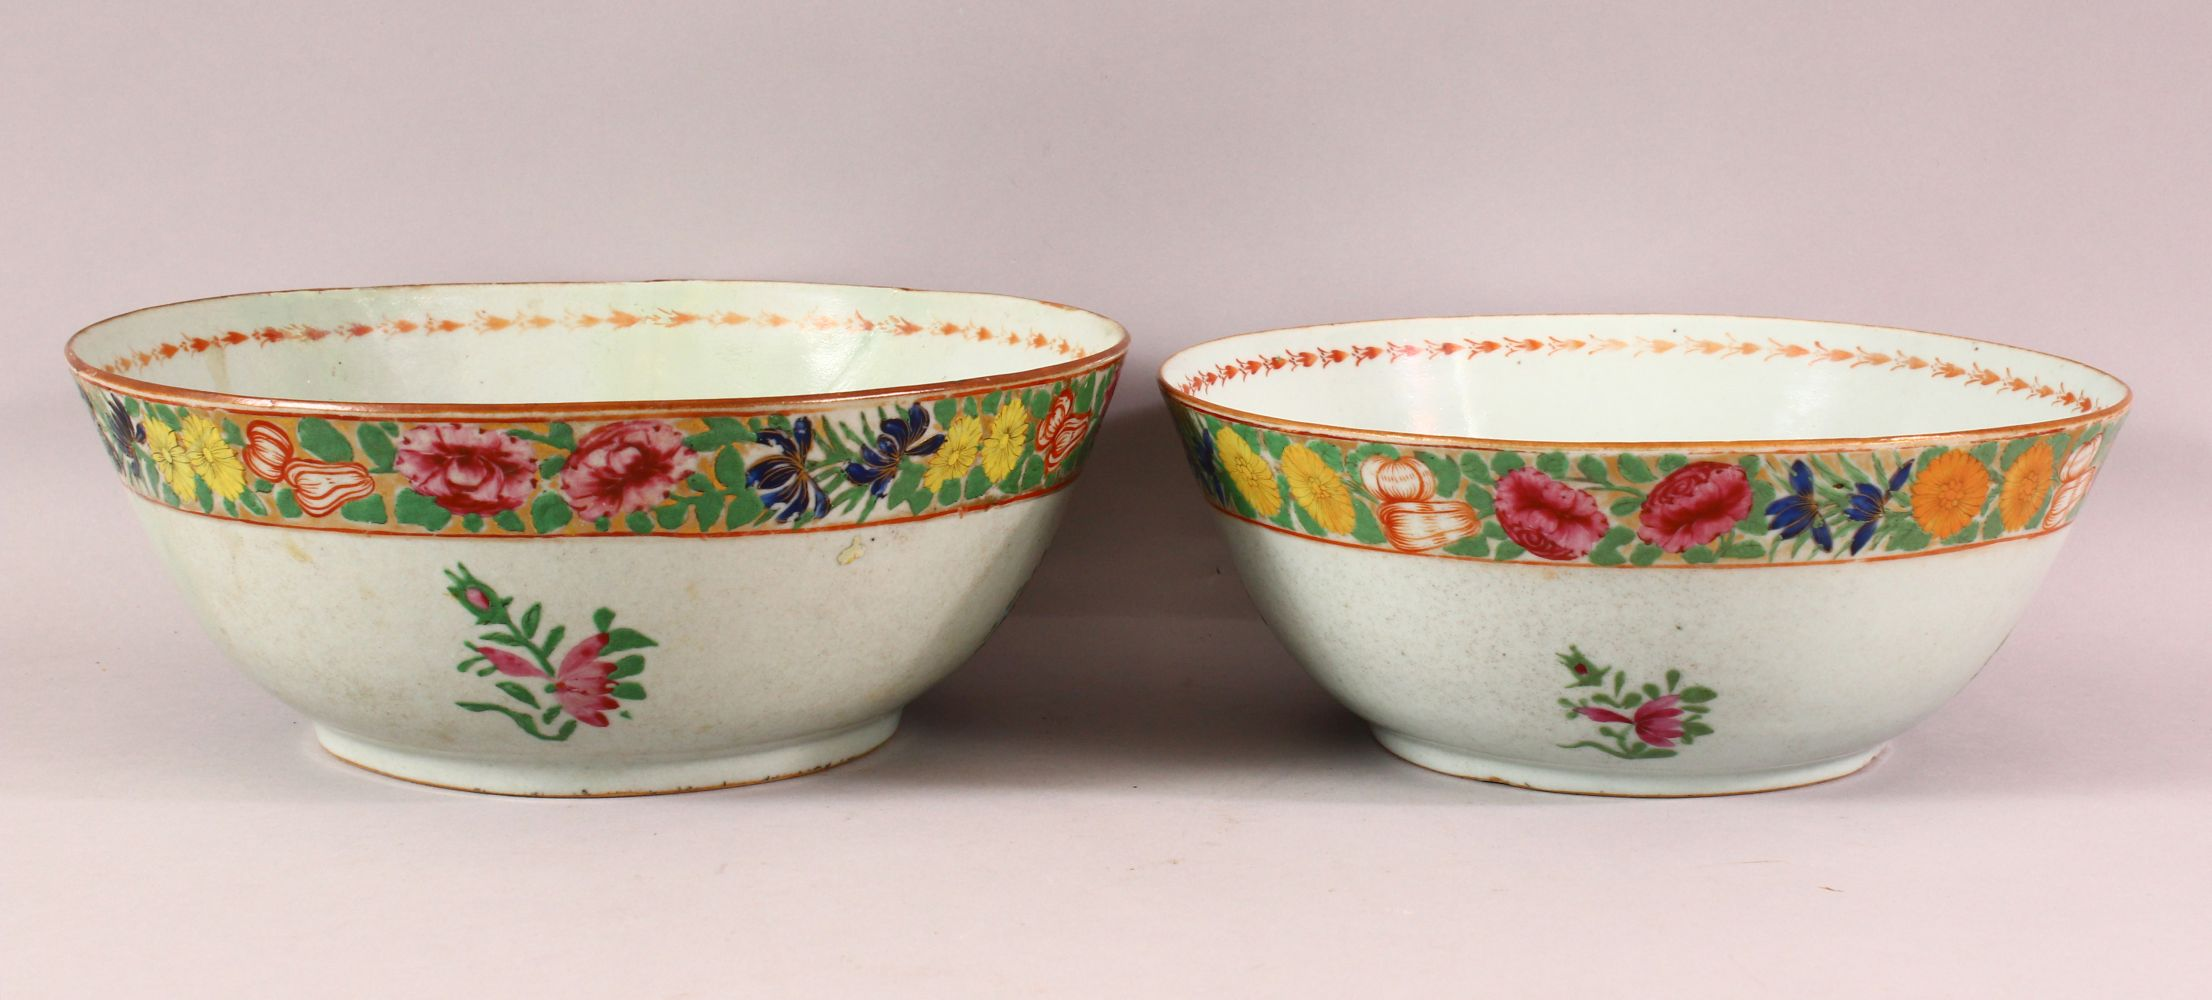 TWO 18TH / 19TH CENTURY CHINESE FAMILLE ROSE PORCELAIN BOWLS, each decorated with bands of flora, (